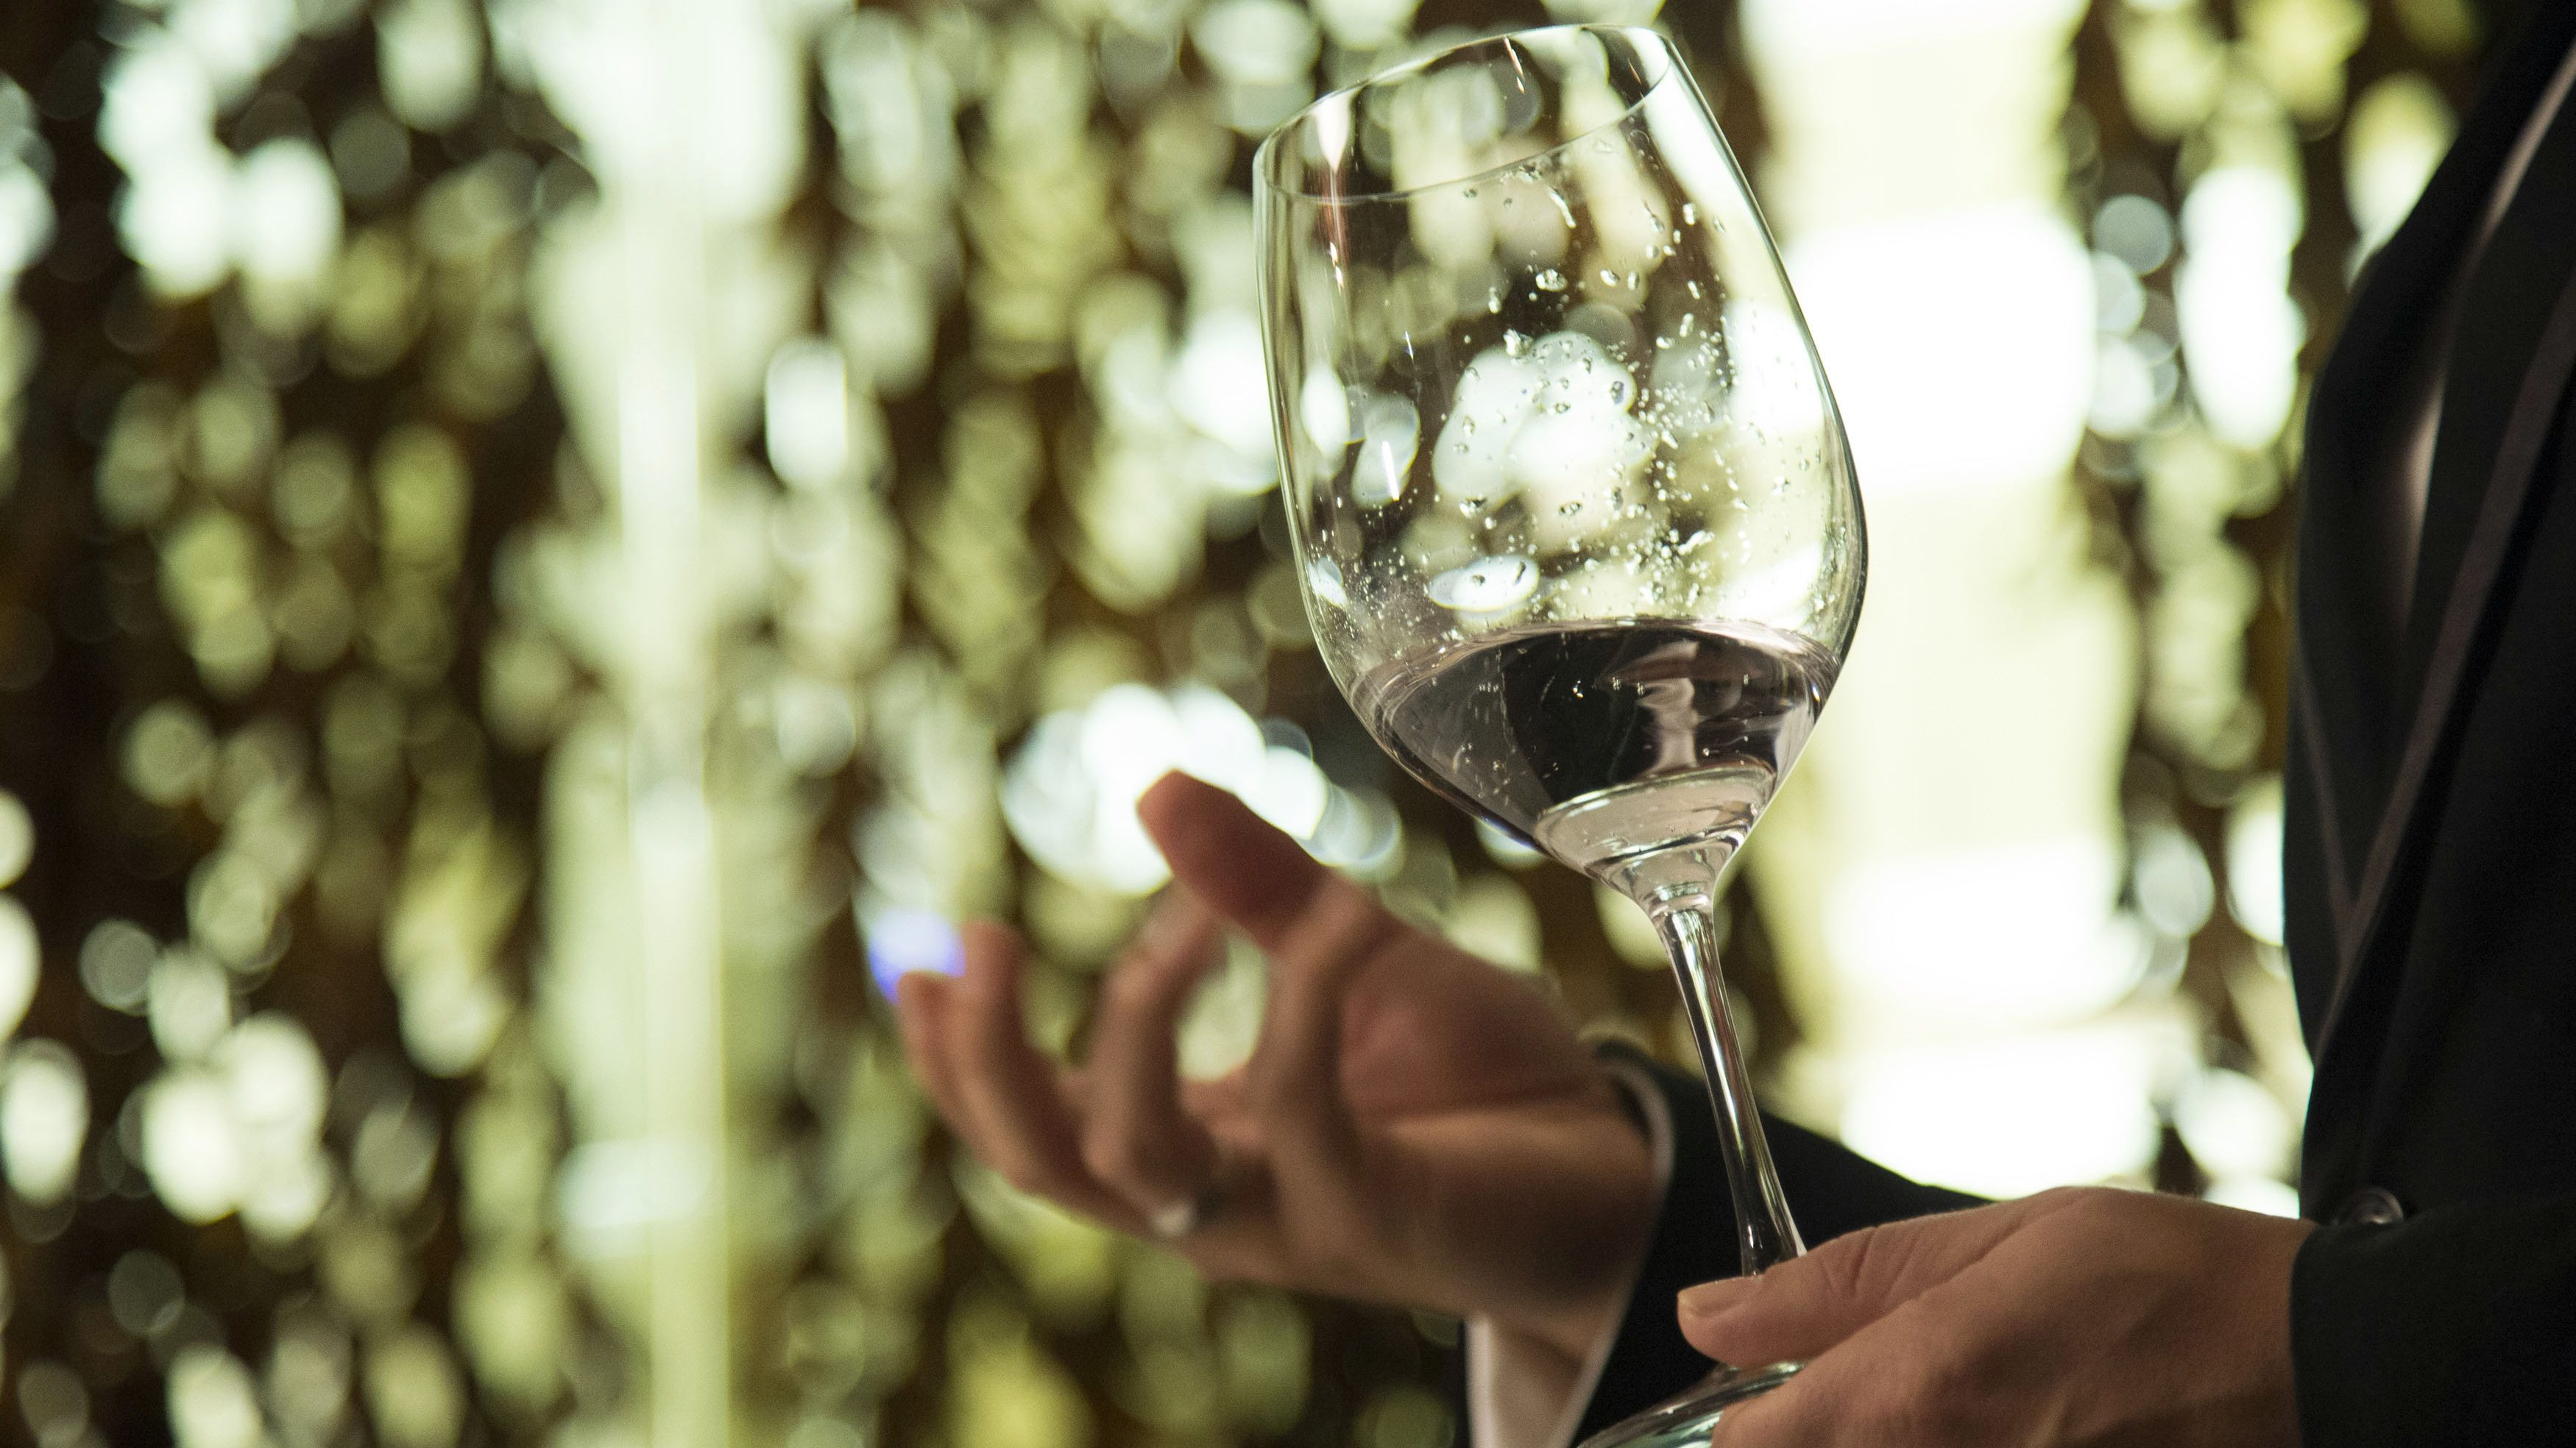 German water sommelier Riese holds a glass of Roi water during a water tasting class at Patina restaurant in Los Angeles